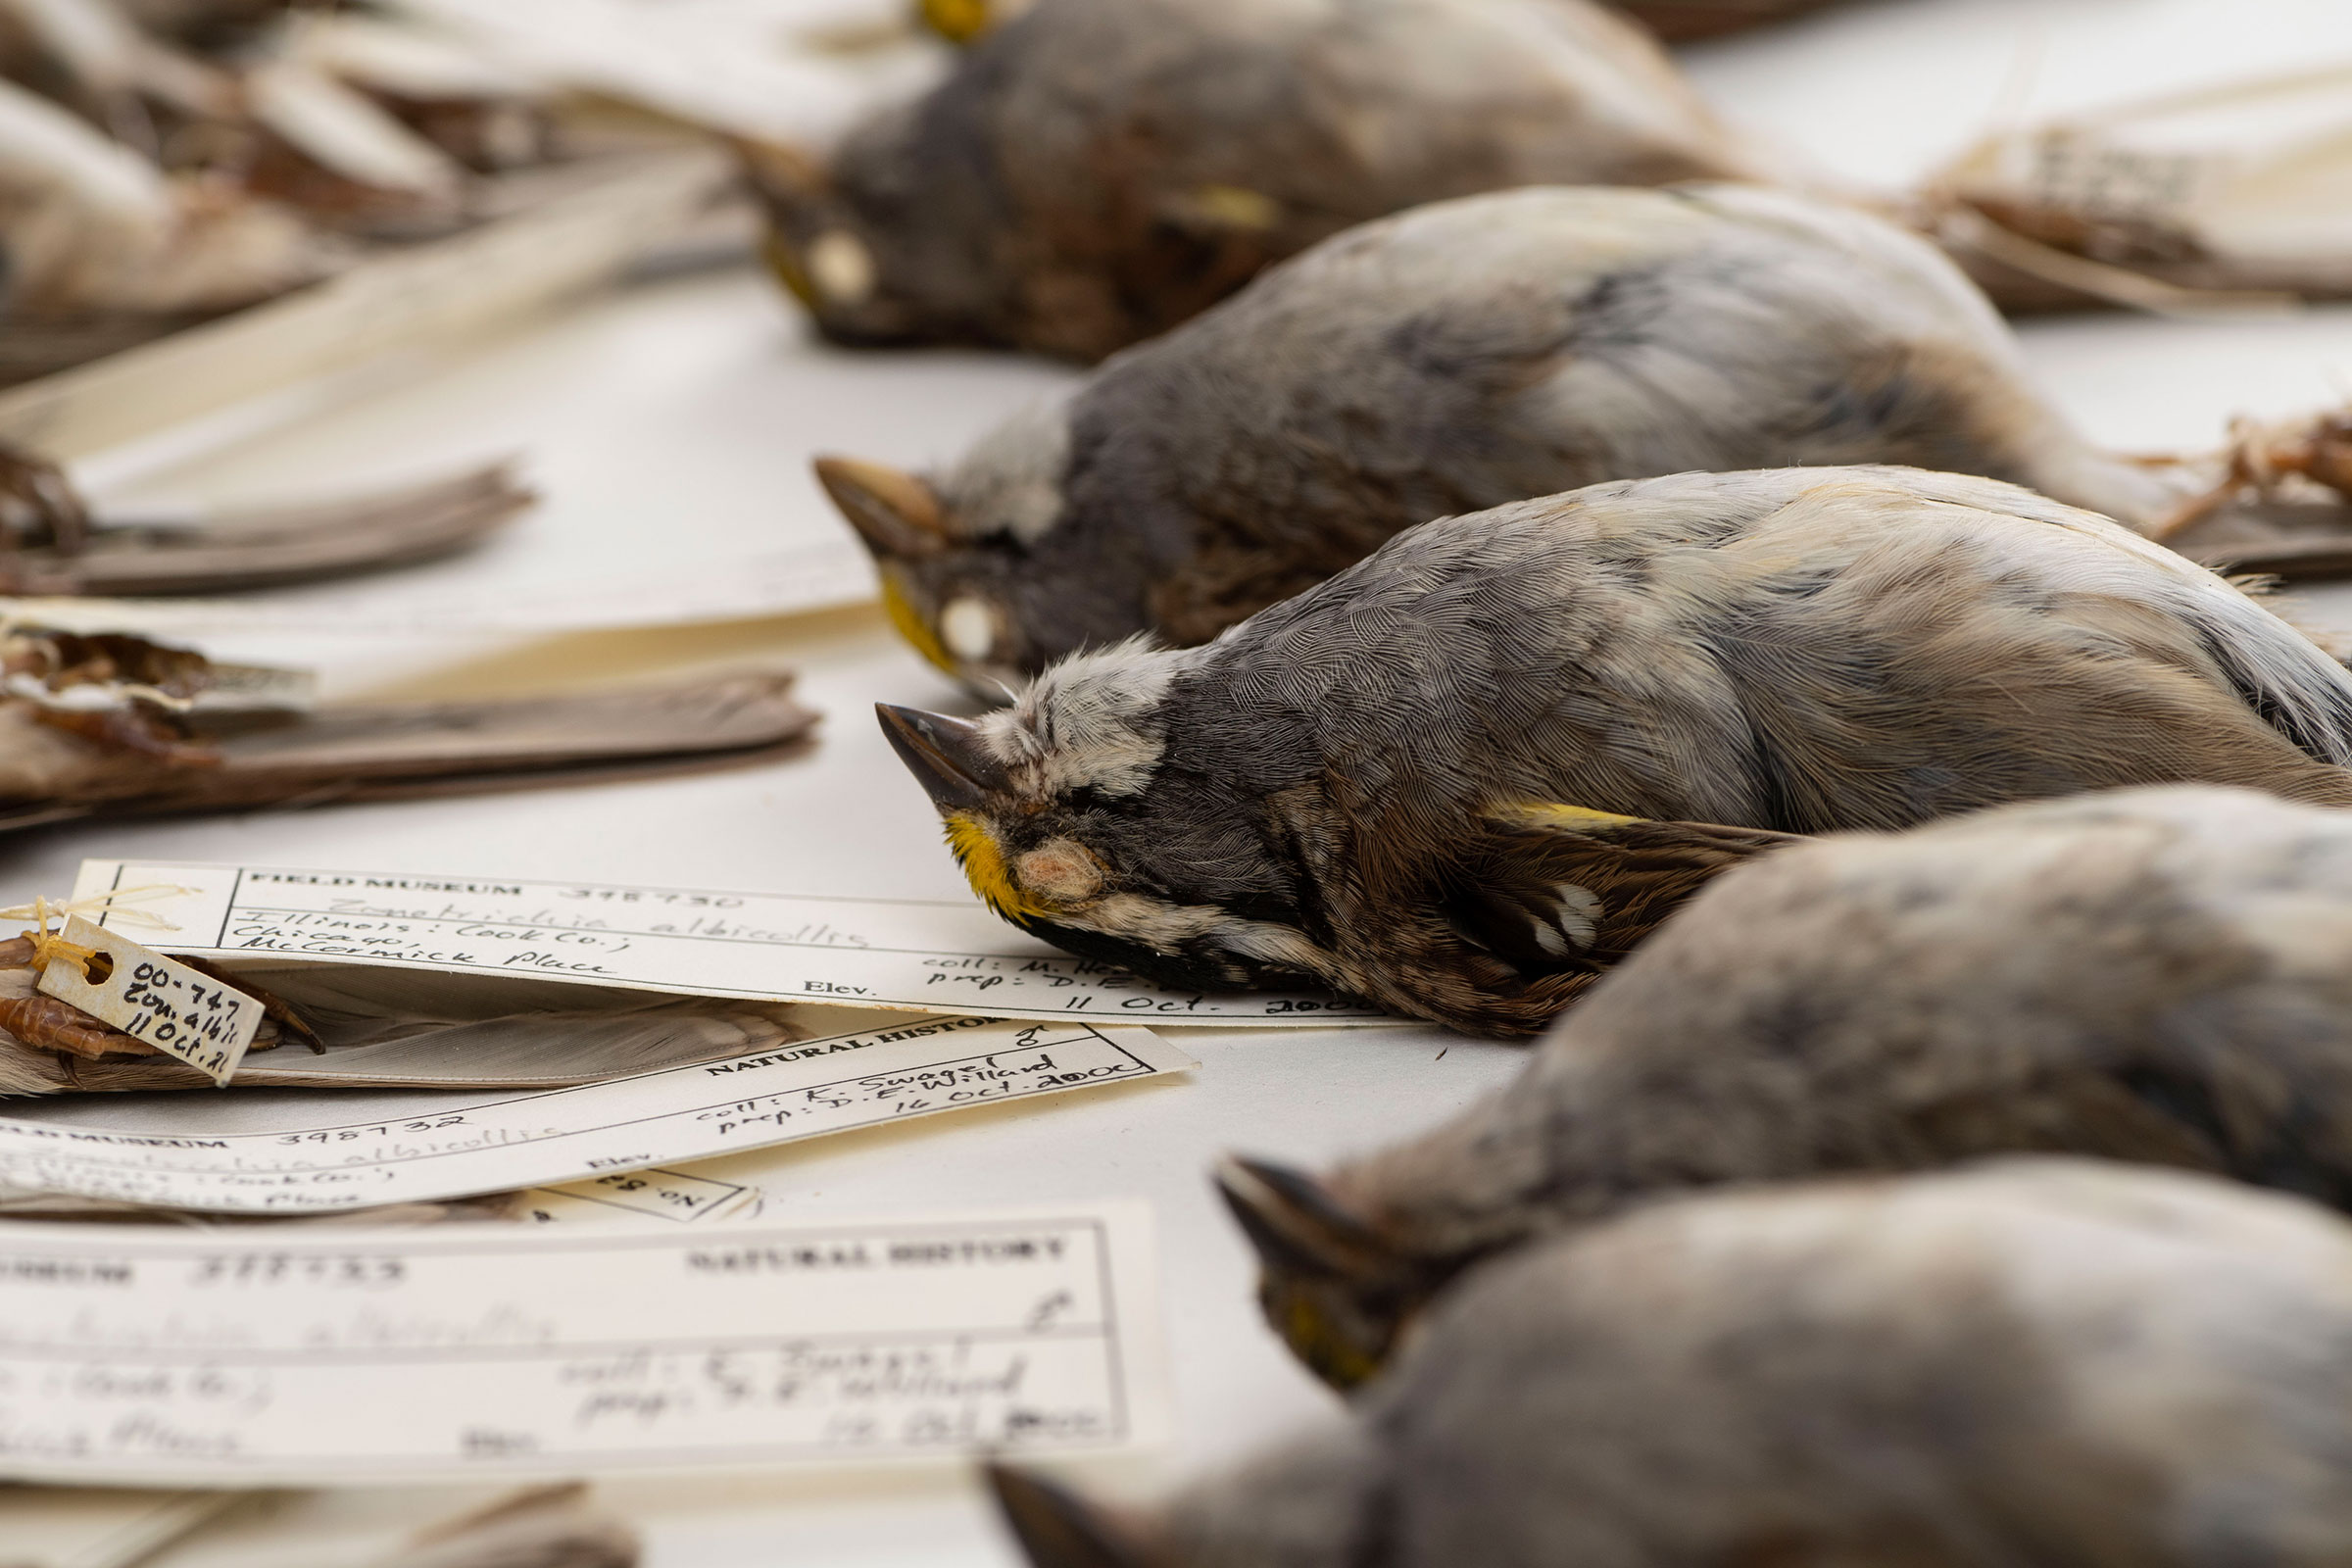 White-throated Sparrows that died after colliding with buildings in Chicago and were collected by researchers at the Field Museum. Roger Hart/University of Michigan